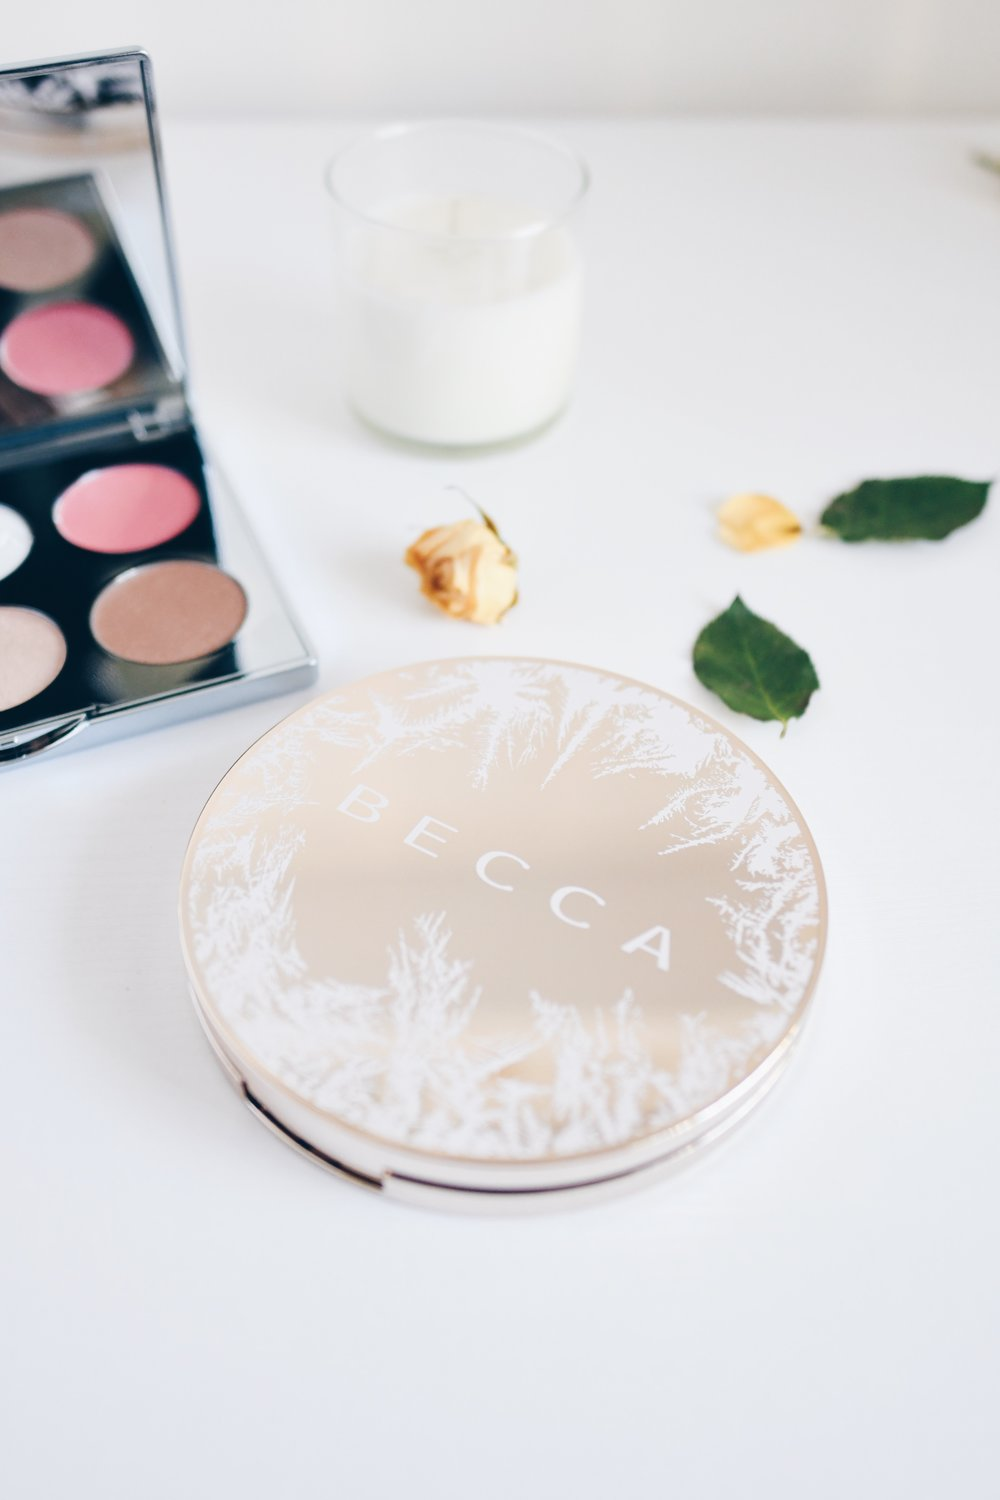 Becca Beauty // Après Ski Glow Collection: Eye Lights Palette